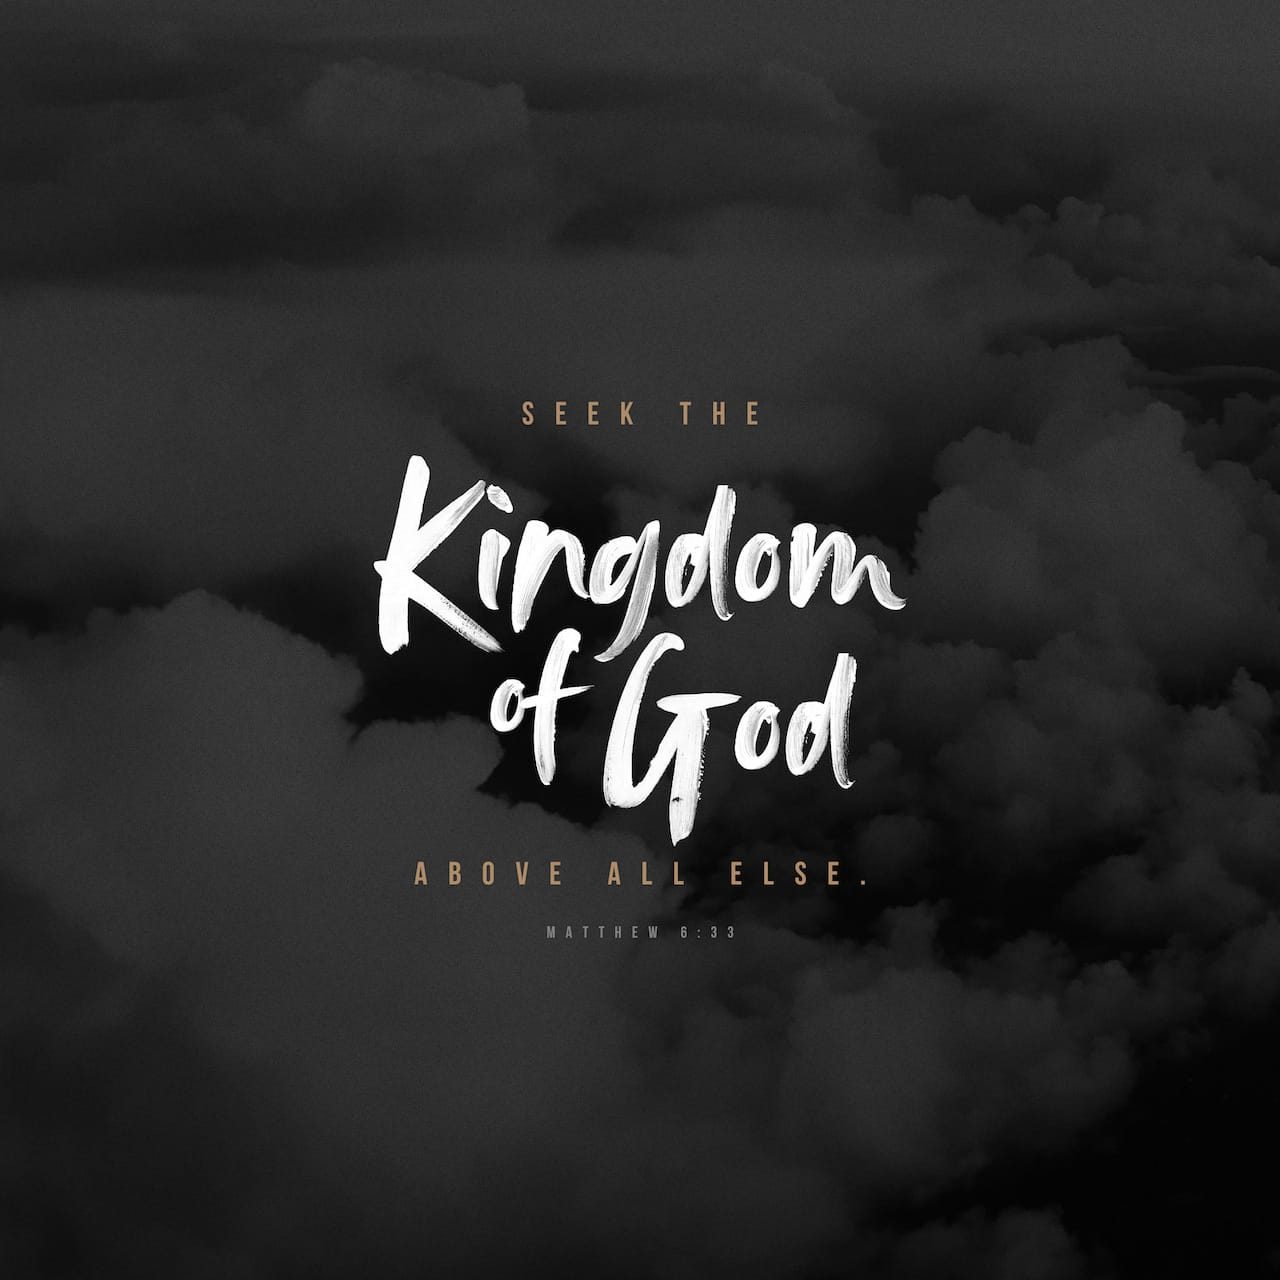 Matthew 6:33 But seek ye first the kingdom of God, and his righteousness; and all these things shall be added unto you. | King James Version (KJV)